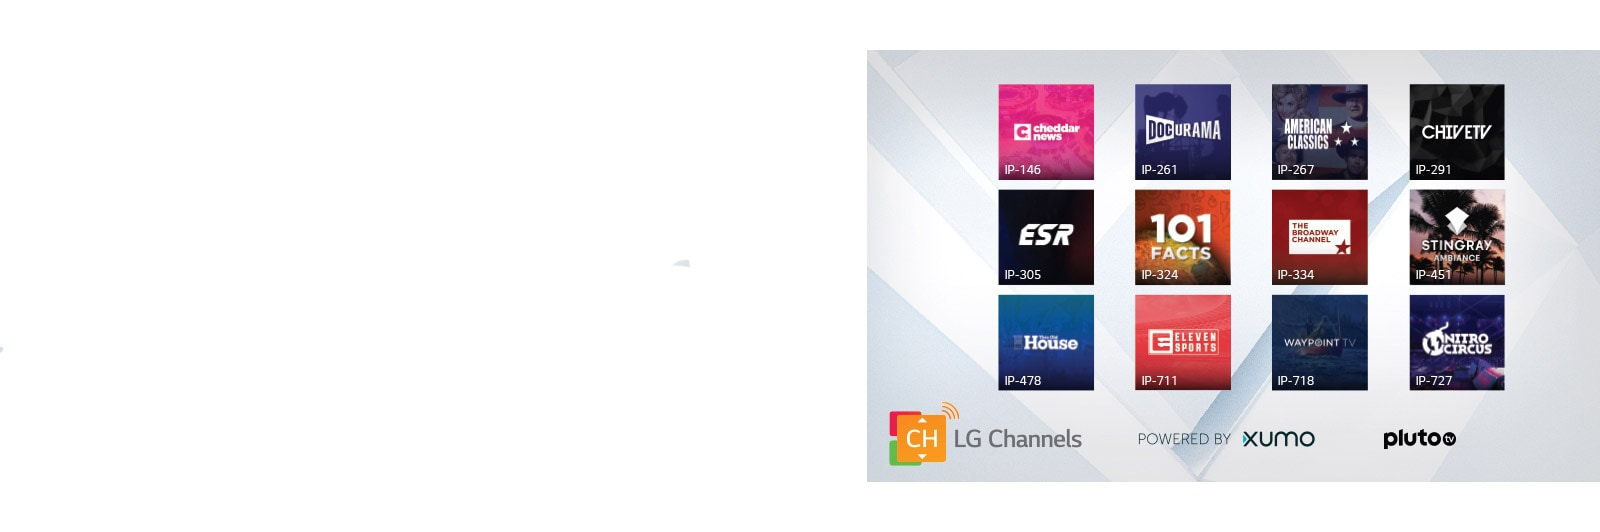 See more, stream more with LG Channels2